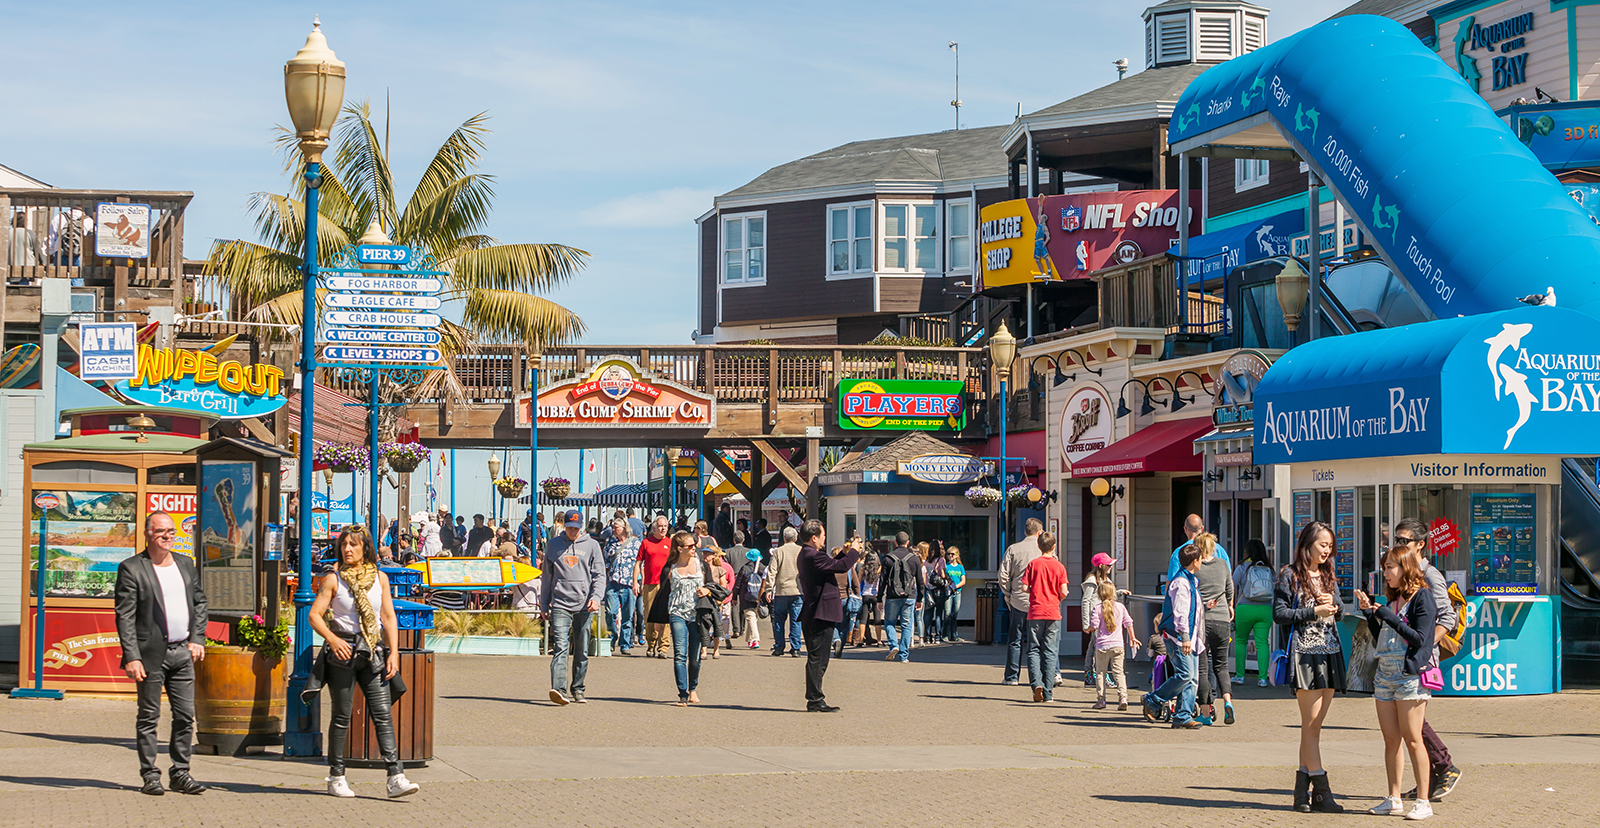 Occupying the northern waterfront area from Ghirardelli Square to Pier 35, Fisherman's Wharf is a lively spot filled with seafood restaurants, museums and tourist-friendly shops.